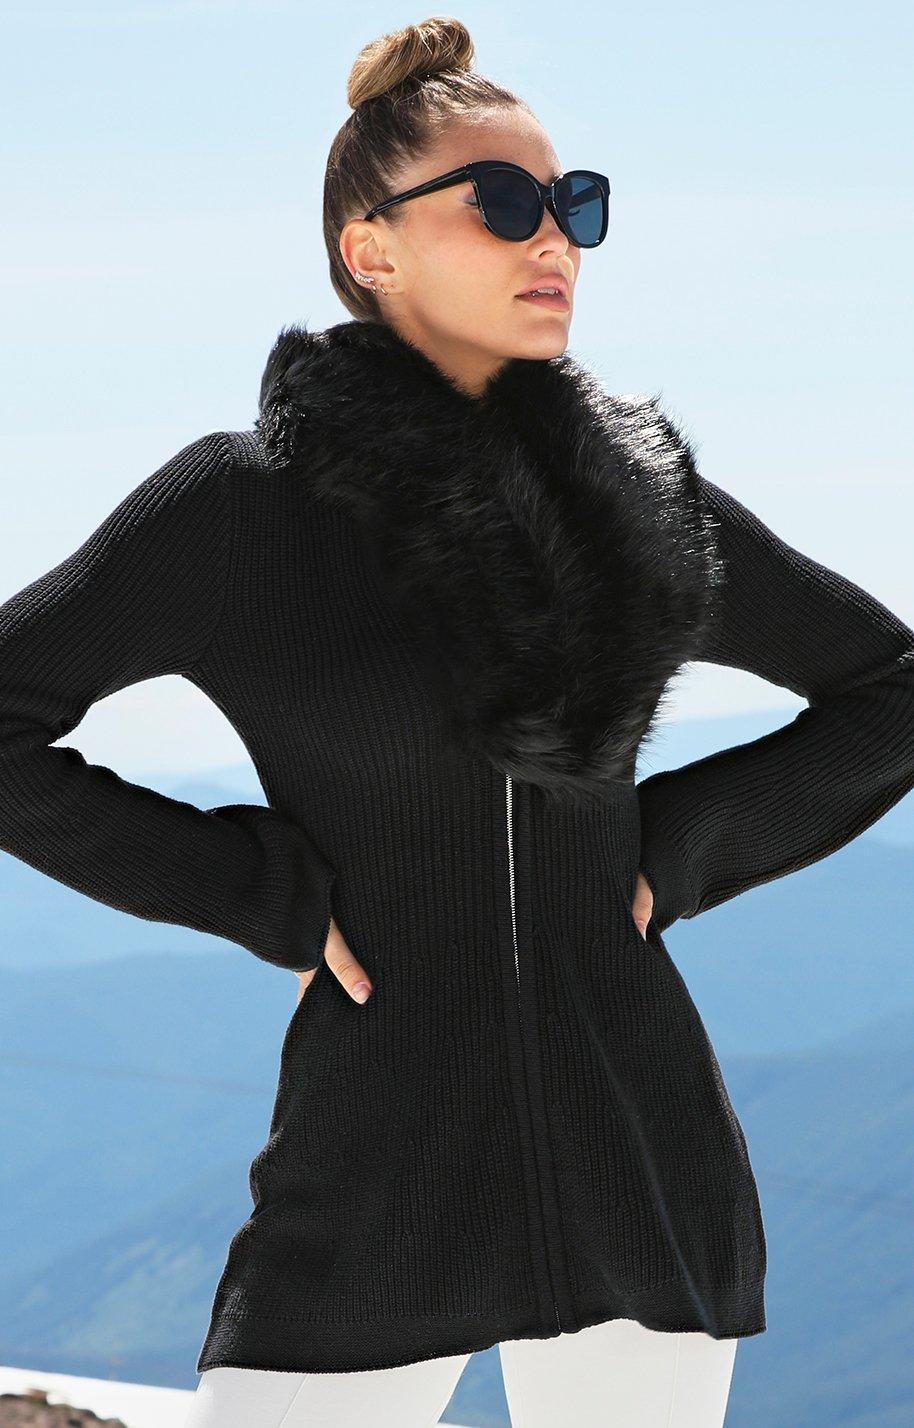 model wearing black jacket with faux fur, white pants, and sunglasses